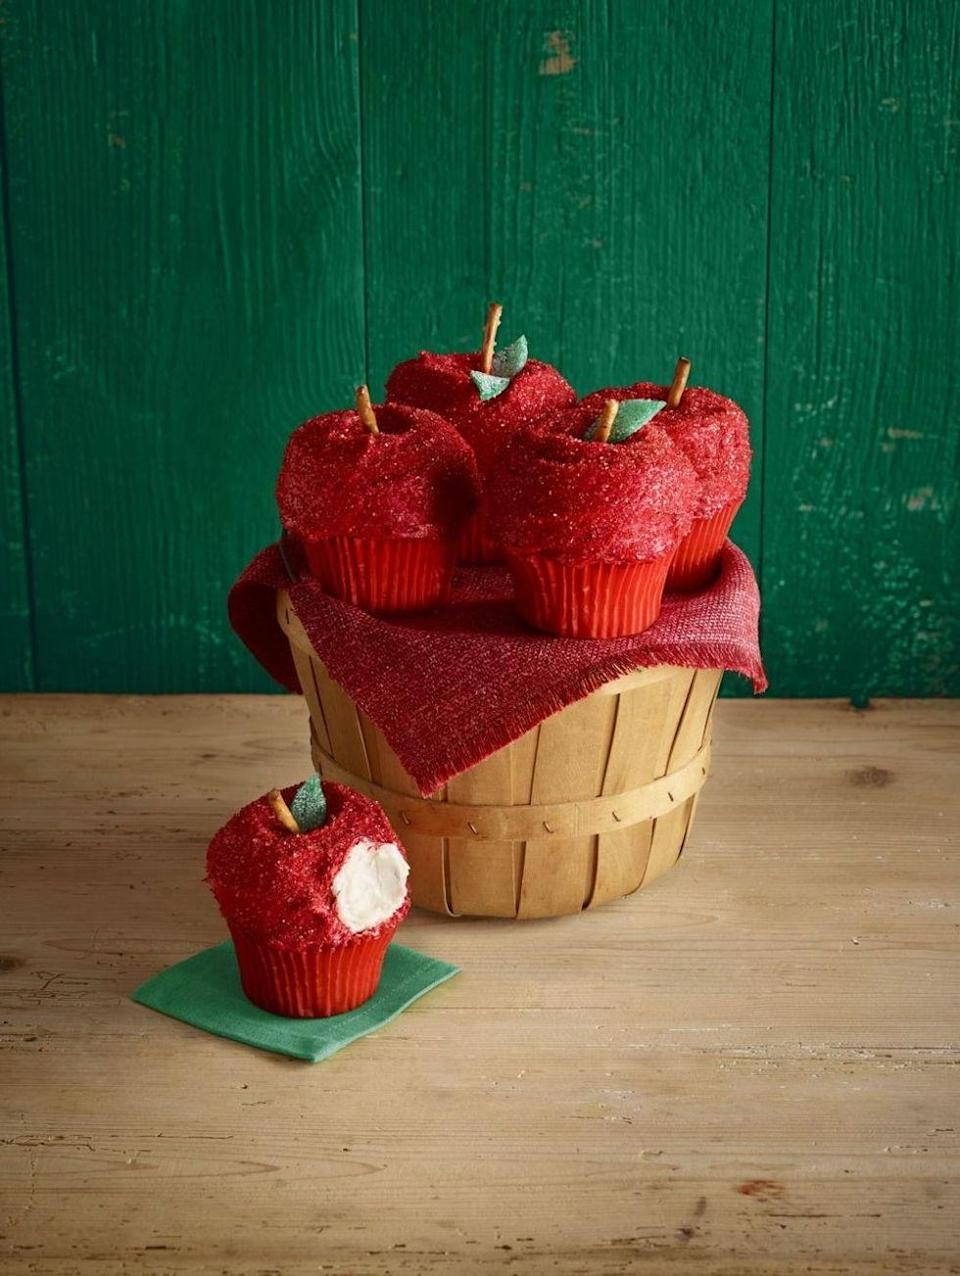 """<p>Here's what happens when cupcakes dress up like apples for Halloween! Top homemade or store-bought cupcakes with mini donuts and cover with frosting for cutest-ever treat.</p><p><em><a href=""""https://www.womansday.com/food-recipes/food-drinks/recipes/a56452/apple-cupcakes-recipe/"""" rel=""""nofollow noopener"""" target=""""_blank"""" data-ylk=""""slk:Get the recipe from Woman's Day »"""" class=""""link rapid-noclick-resp"""">Get the recipe from Woman's Day »</a></em></p><p><strong>RELATED: </strong><a href=""""https://www.goodhousekeeping.com/food-recipes/dessert/g768/apple-dessert-recipes/"""" rel=""""nofollow noopener"""" target=""""_blank"""" data-ylk=""""slk:40 Apple Desserts That Are Delicious to the Core"""" class=""""link rapid-noclick-resp"""">40 Apple Desserts That Are Delicious to the Core</a><br></p>"""